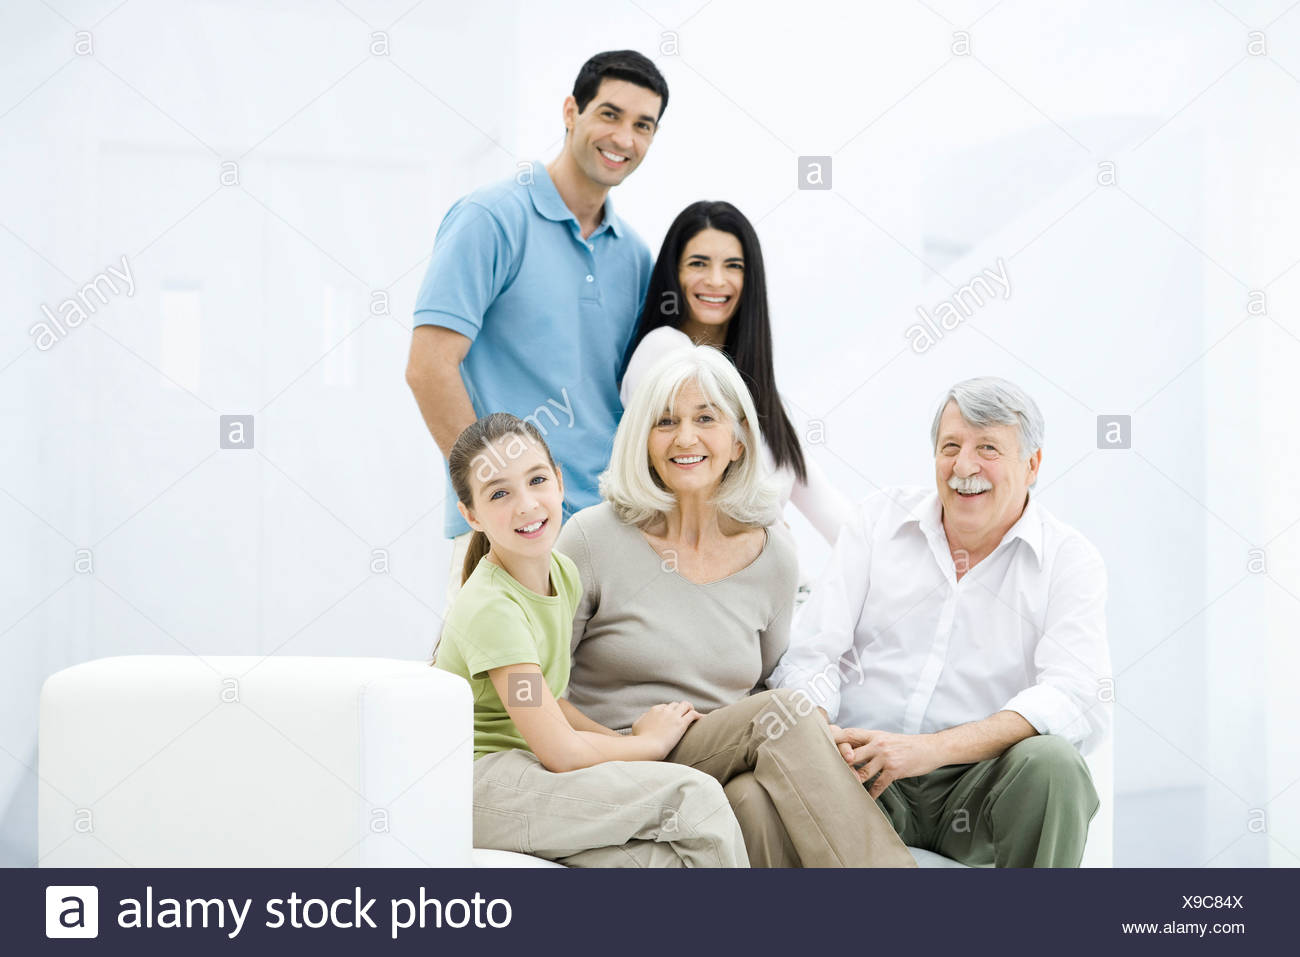 Multi-generation family smiling at camera, portrait Photo Stock